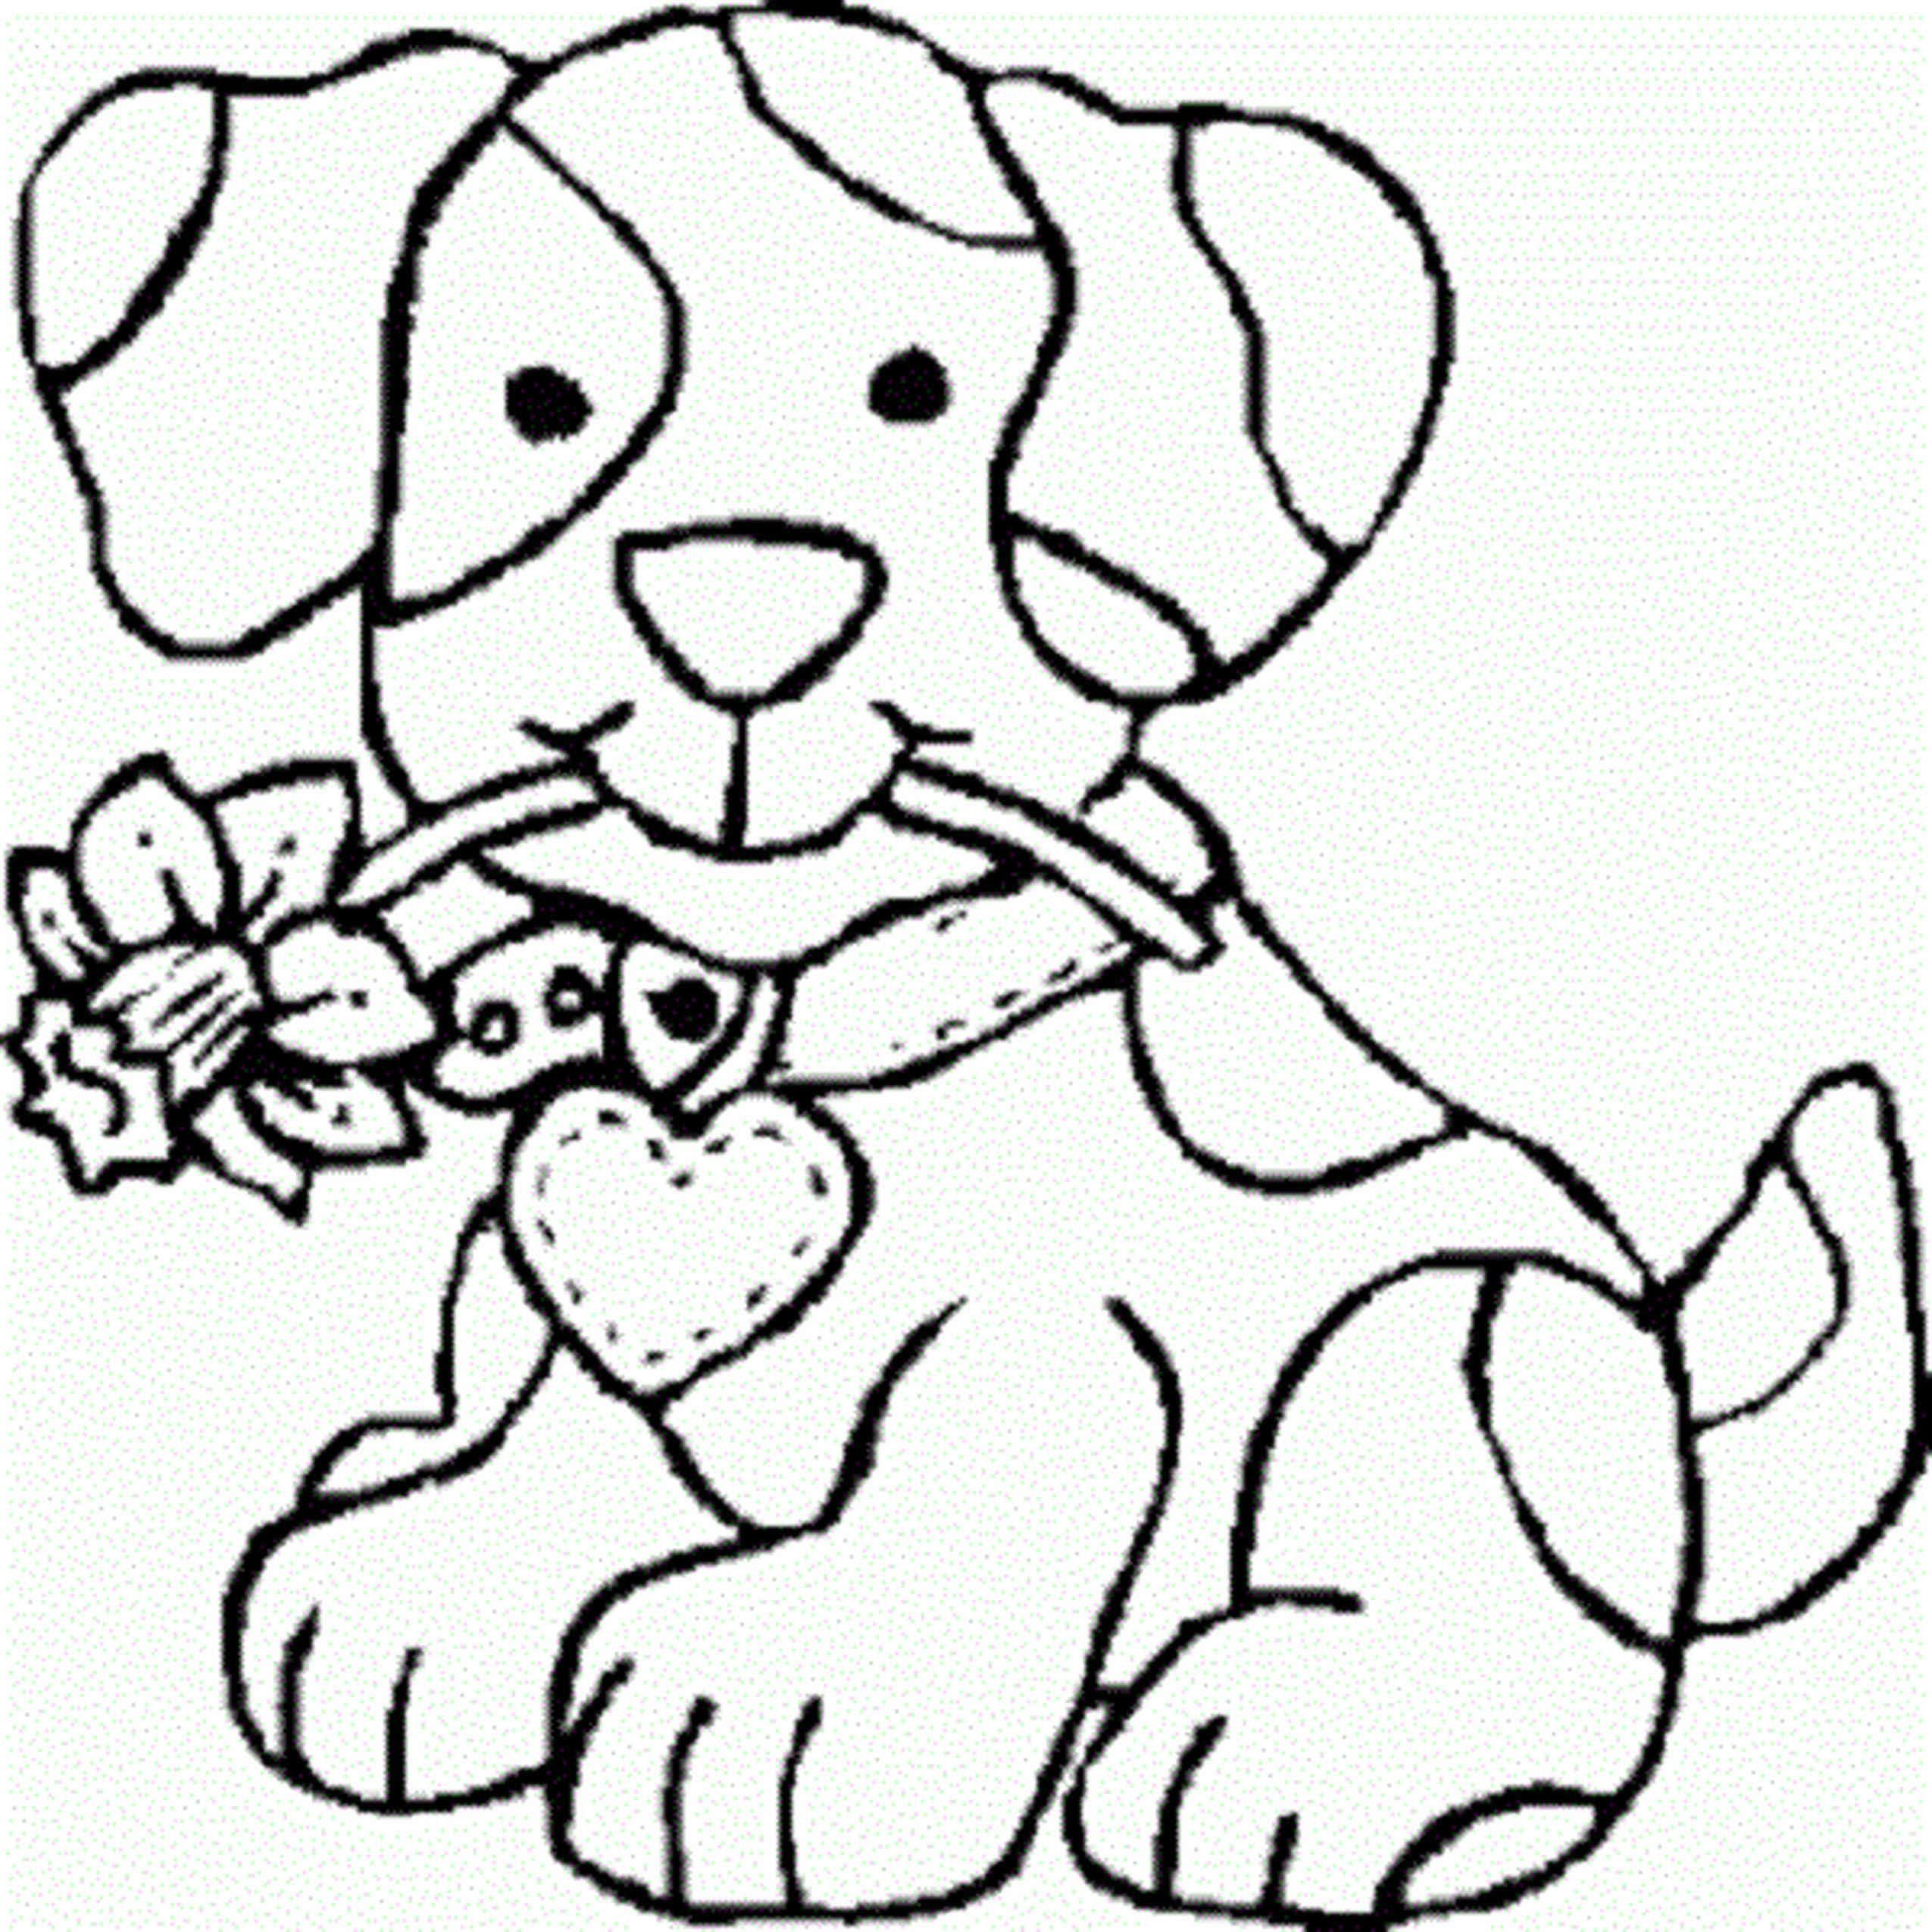 cute dog coloring pages for girls gallery of free printable color - Cute Dog Printable Coloring Pages